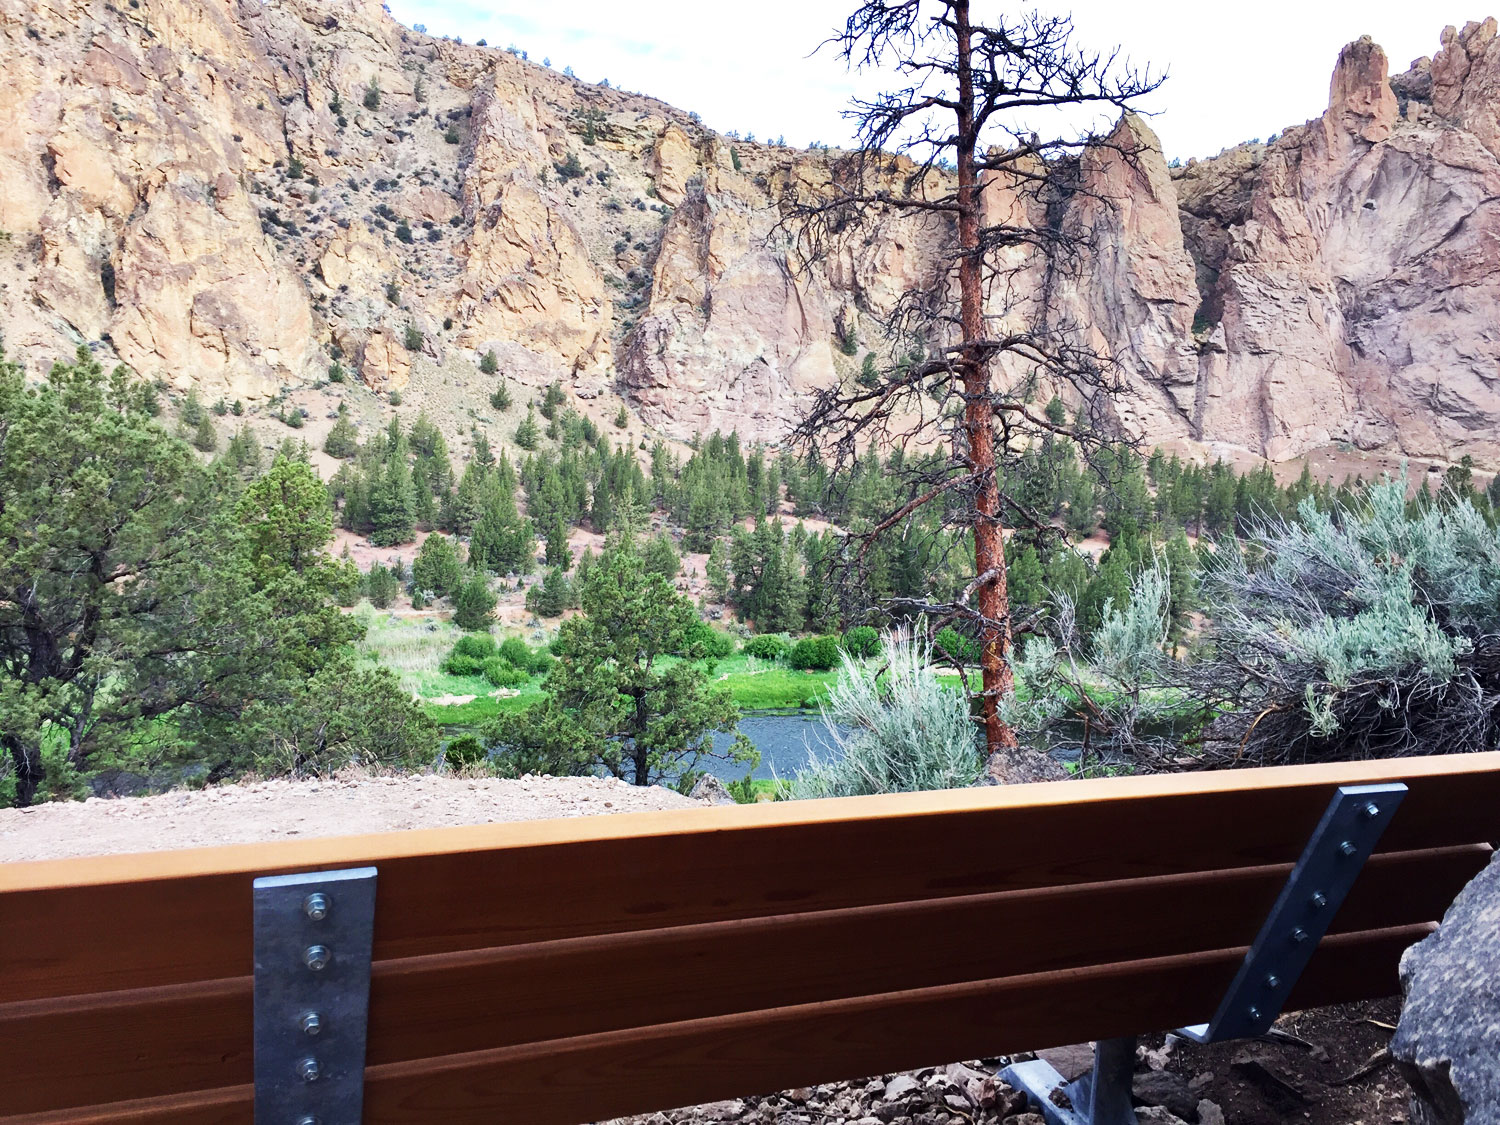 View from the bench on the Homestead Trail at Smith Rock State Park